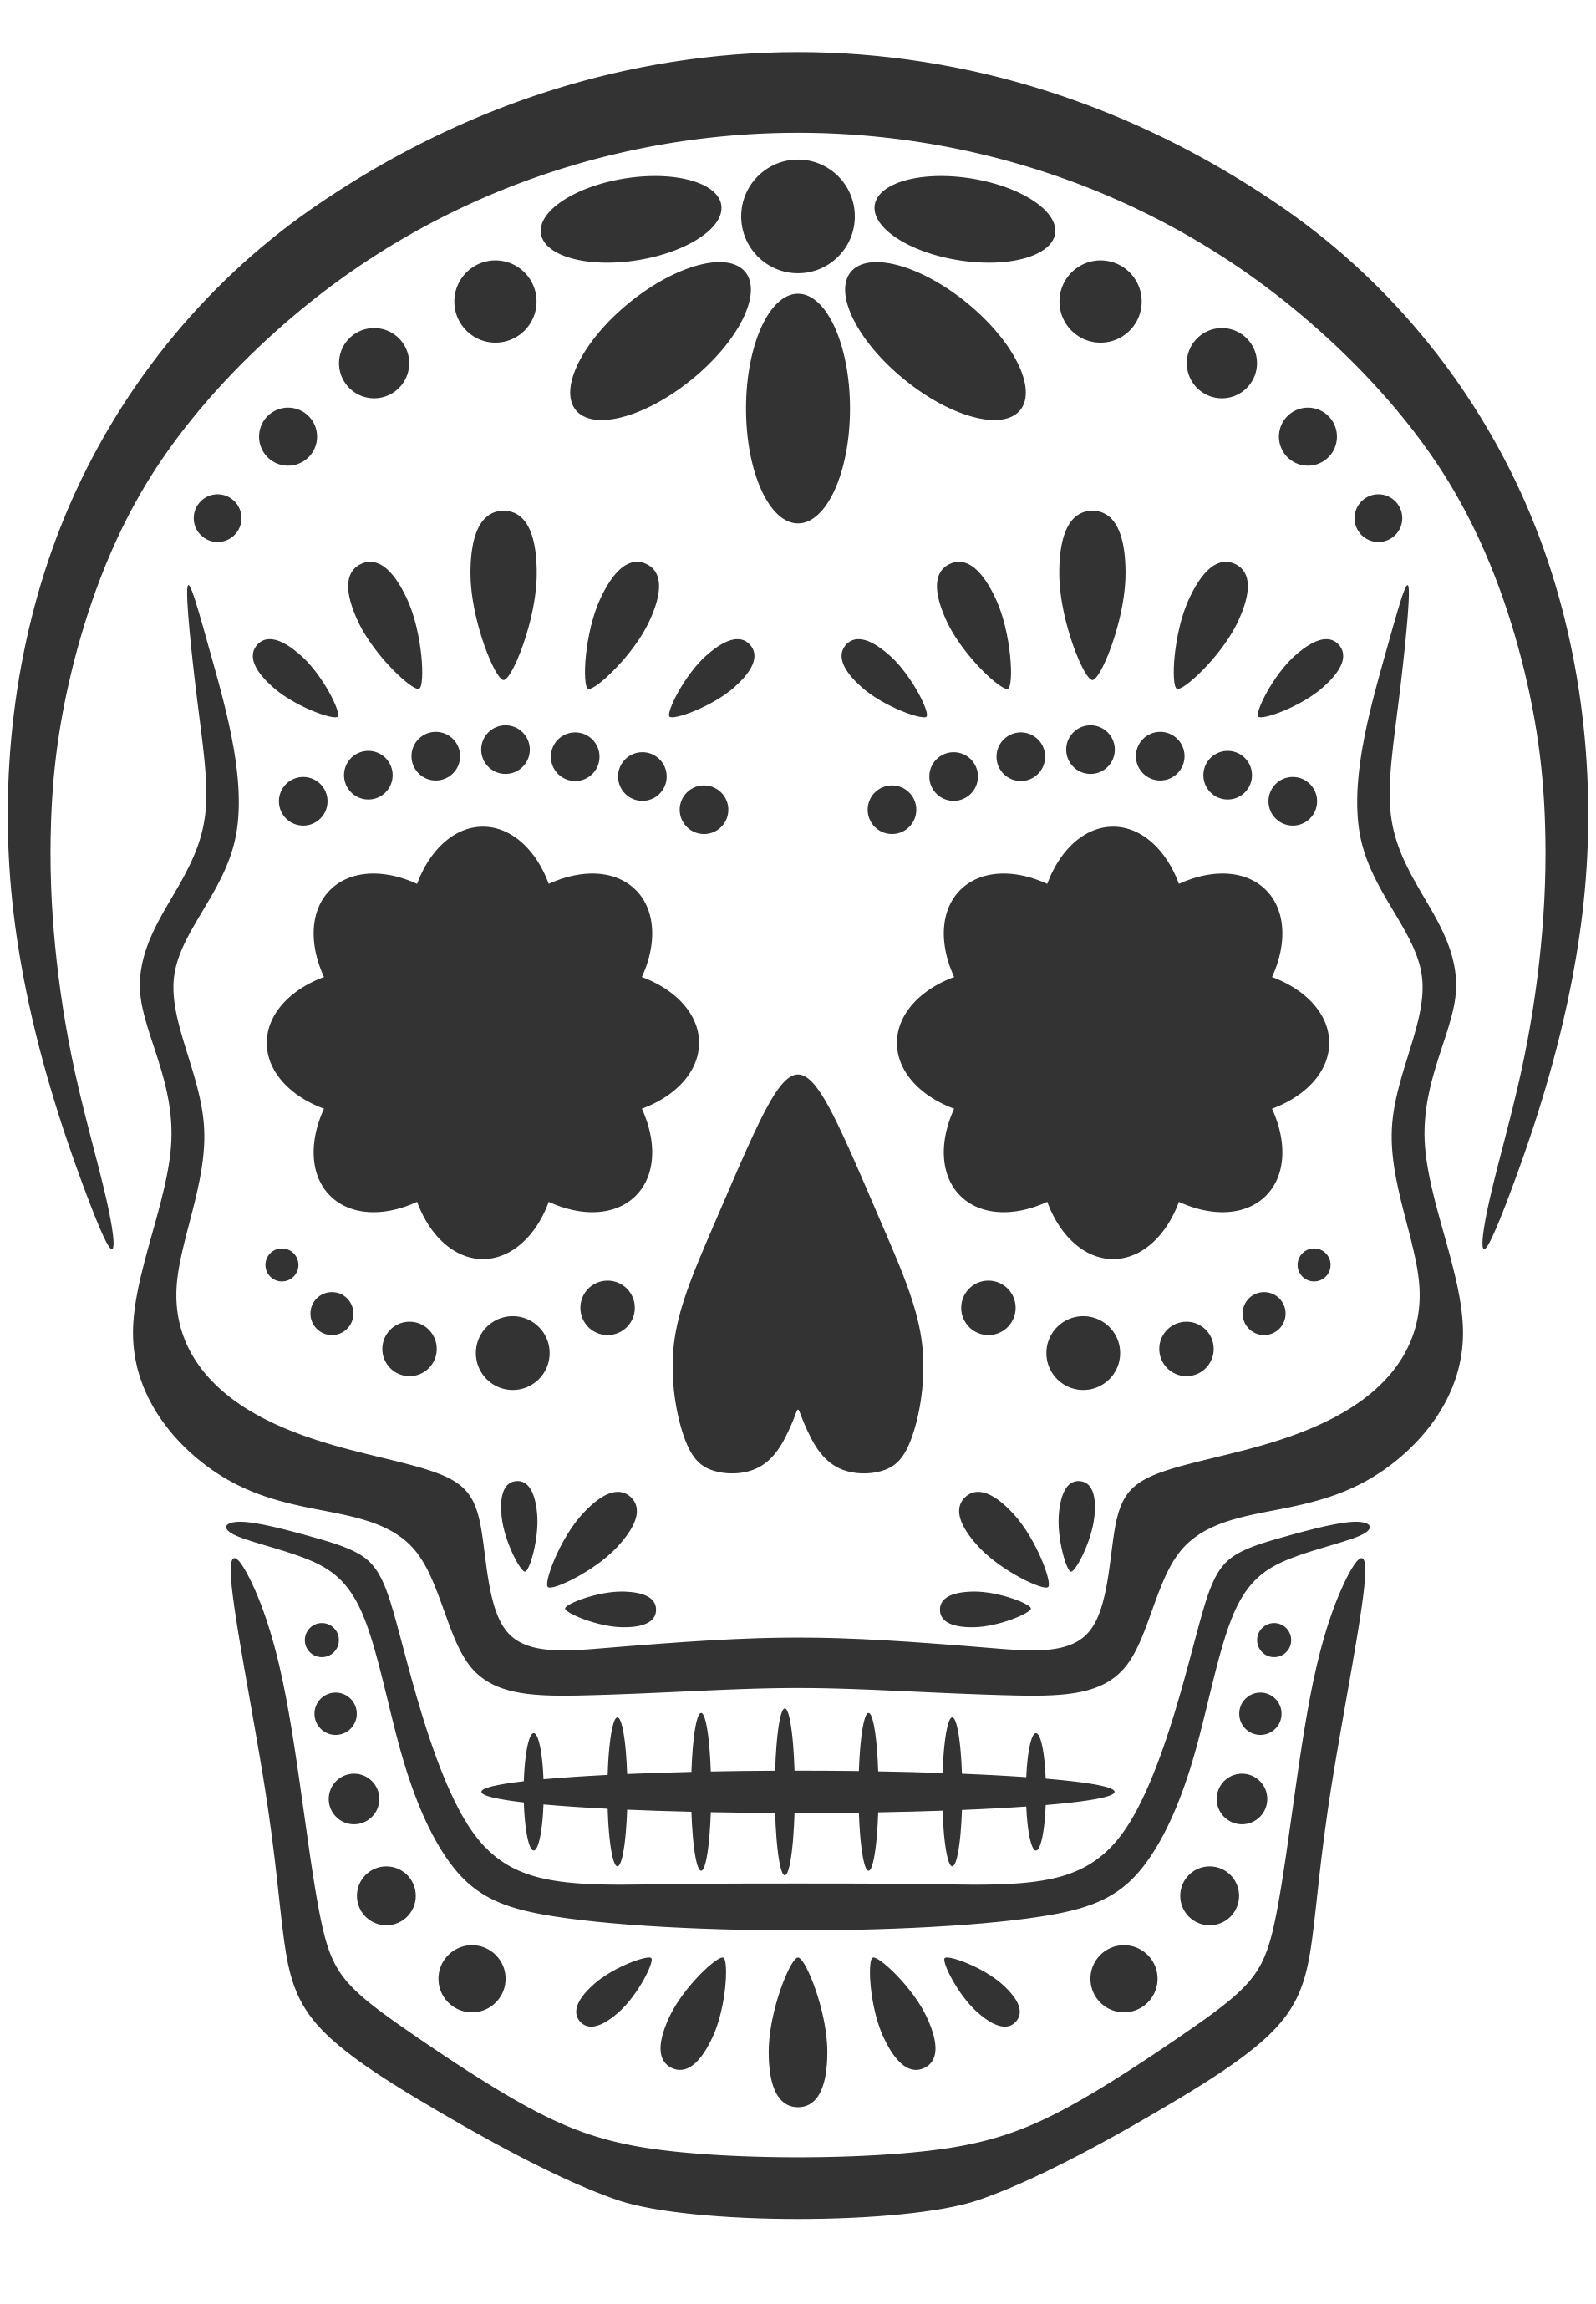 Sugar Skull Template Pin by Kayla Cooper on Halloween Decor Sugar skull